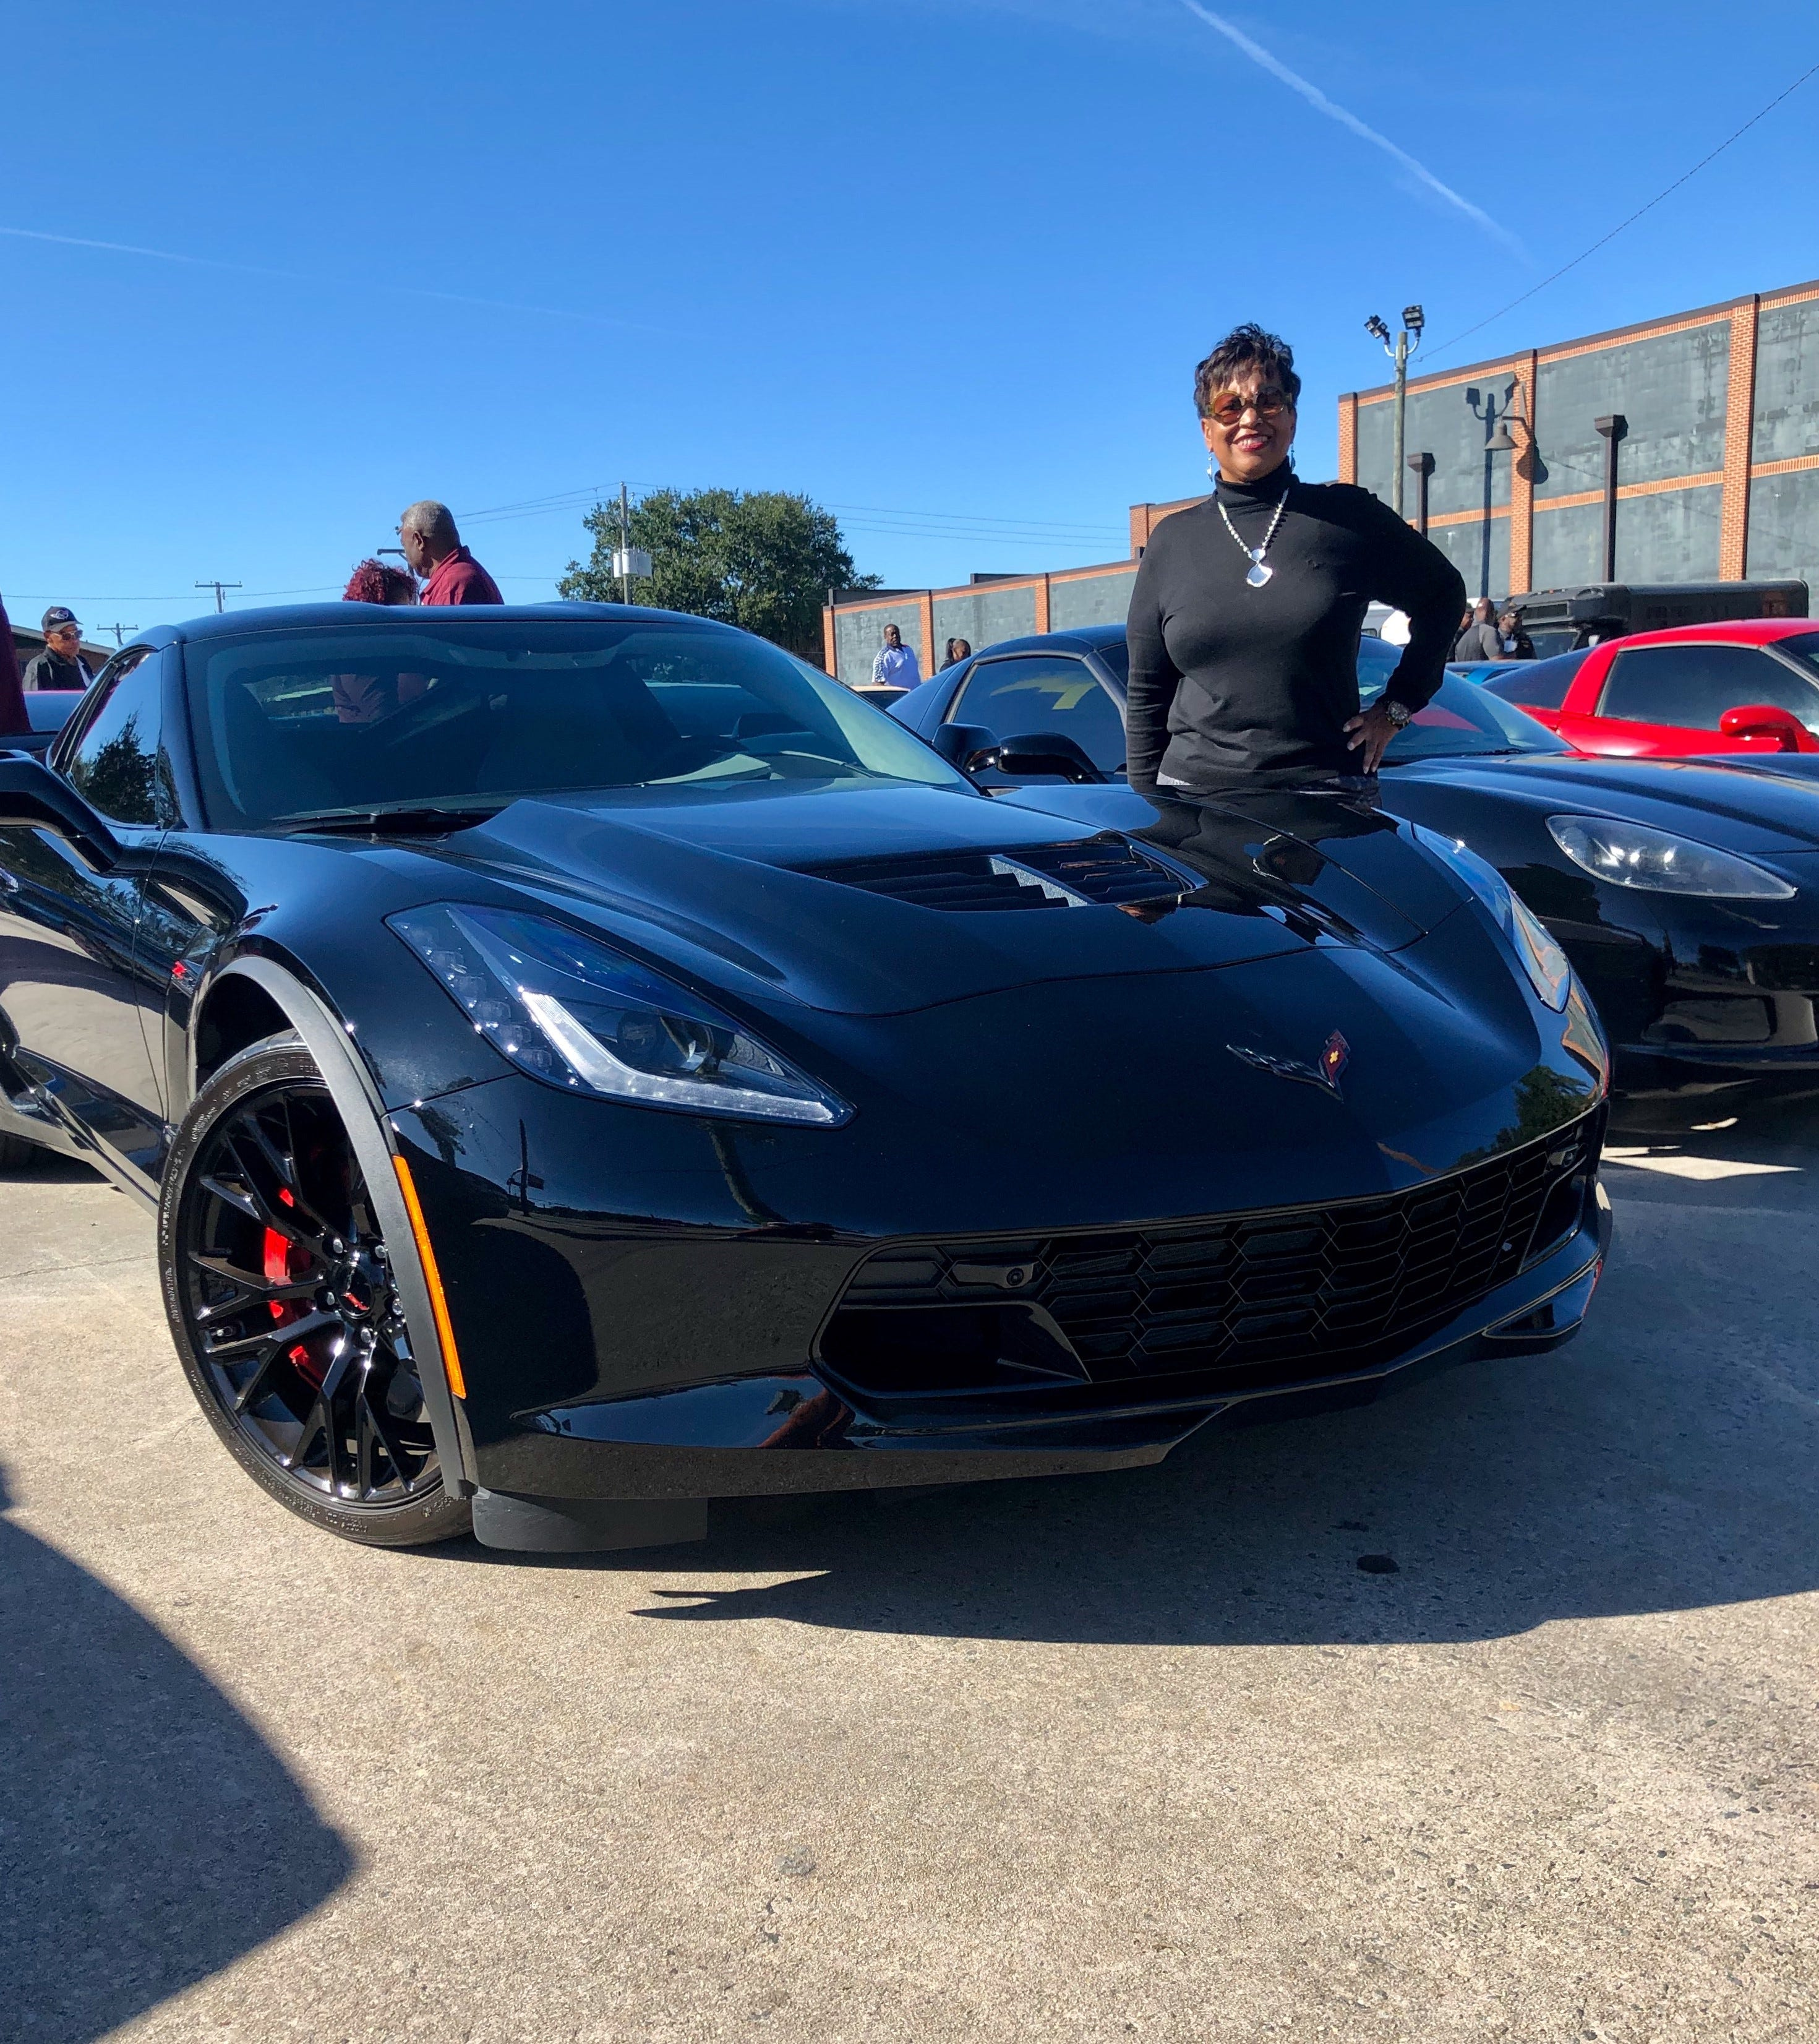 Lawsuit seeks millions from GM for alleged bad wheels on Corvettes